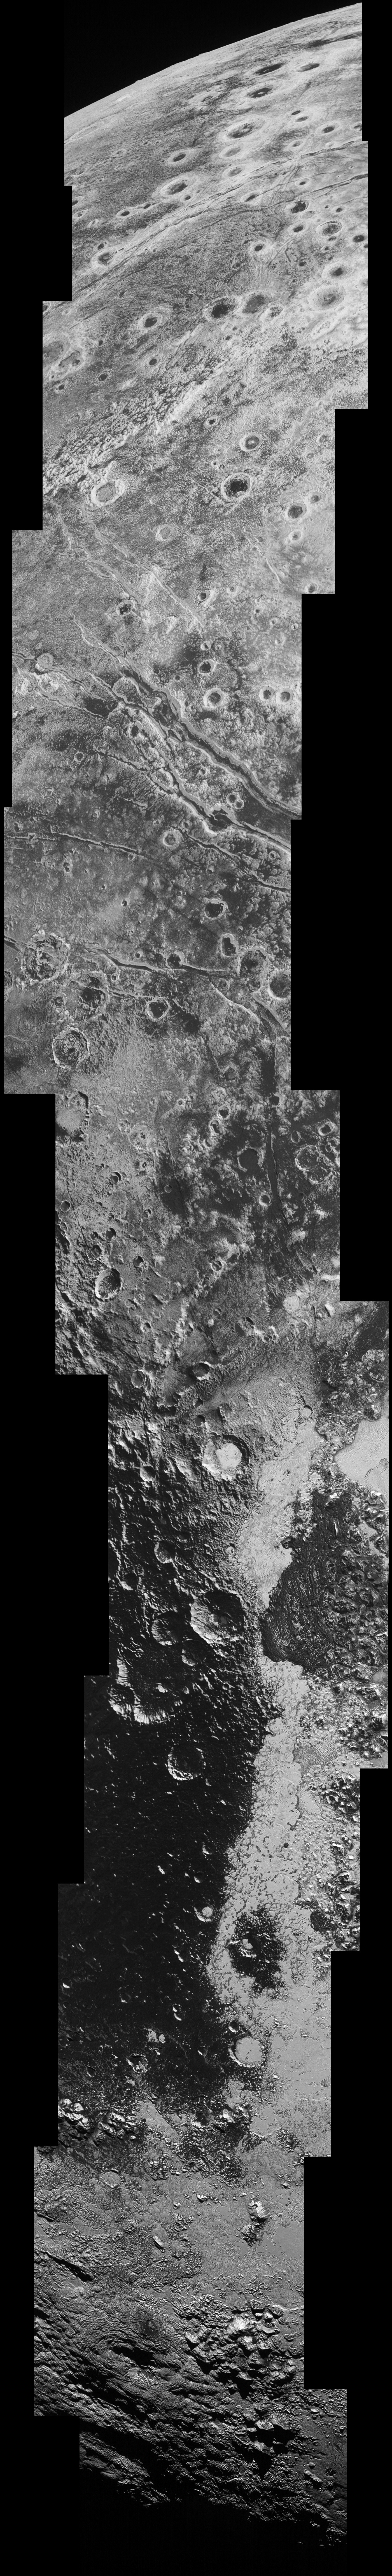 This high-resolution swath of Pluto (right) sweeps over the cratered plains at the west of the New Horizons' encounter hemisphere and across numerous prominent faults, skimming the eastern margin of the dark, forbidding region informally known as Cthulhu Regio, and finally passing over the mysterious, possibly cryovolcanic edifice Wright Mons, before reaching the terminator or day-night line.